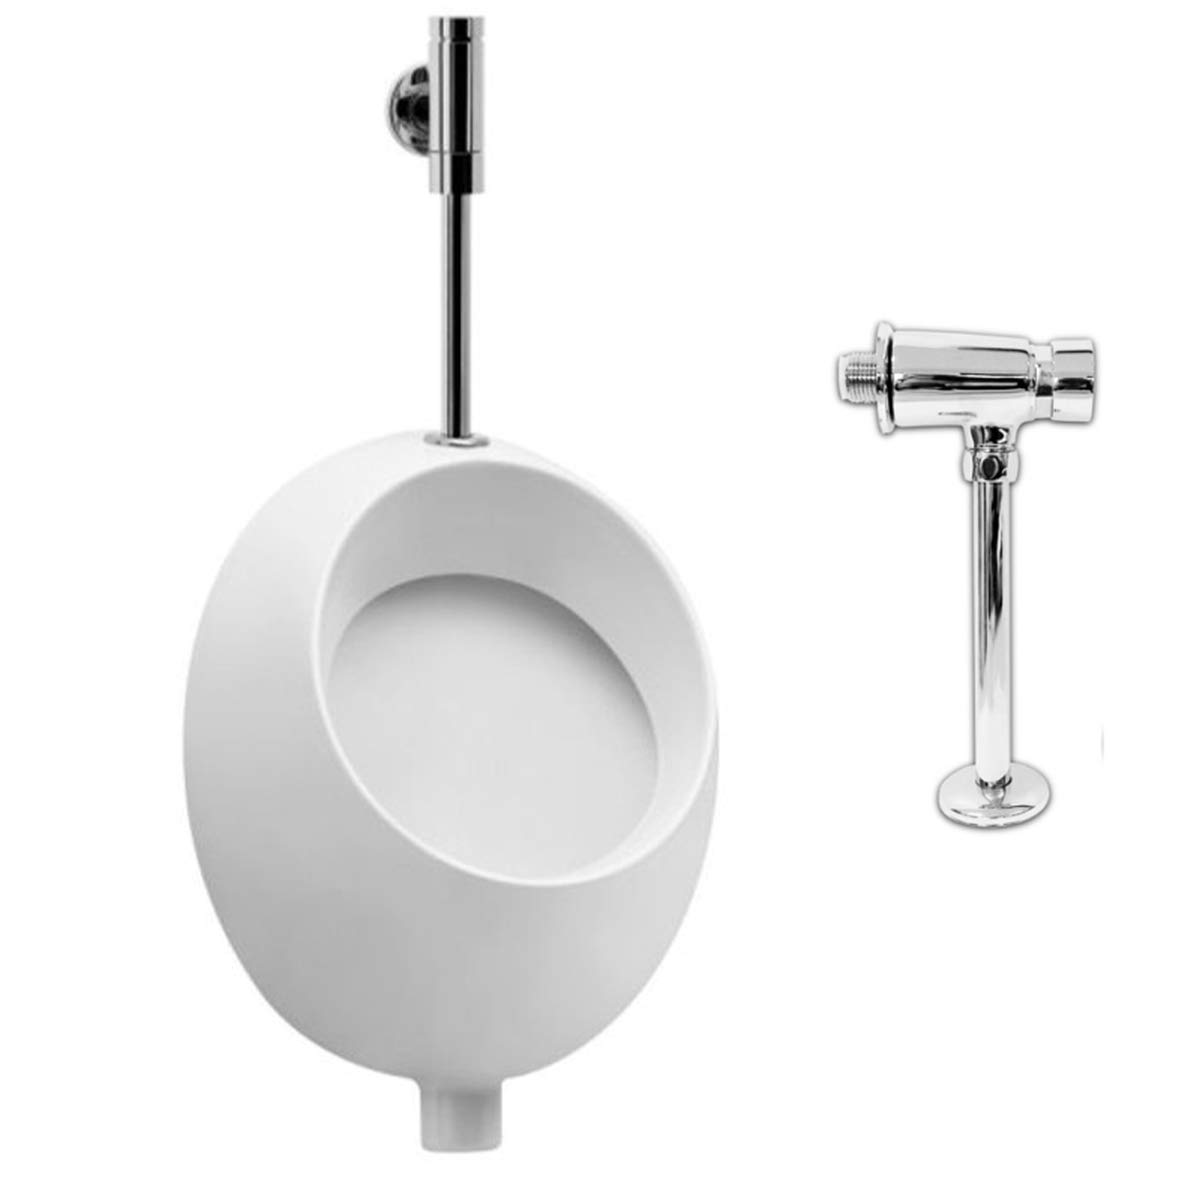 VBChome Set  Urinal Inlet Top White Modern High Quality Ceramic Pissoir Pico greenical Pissoir Flush Valve Urinal Flush Valve Hydro H